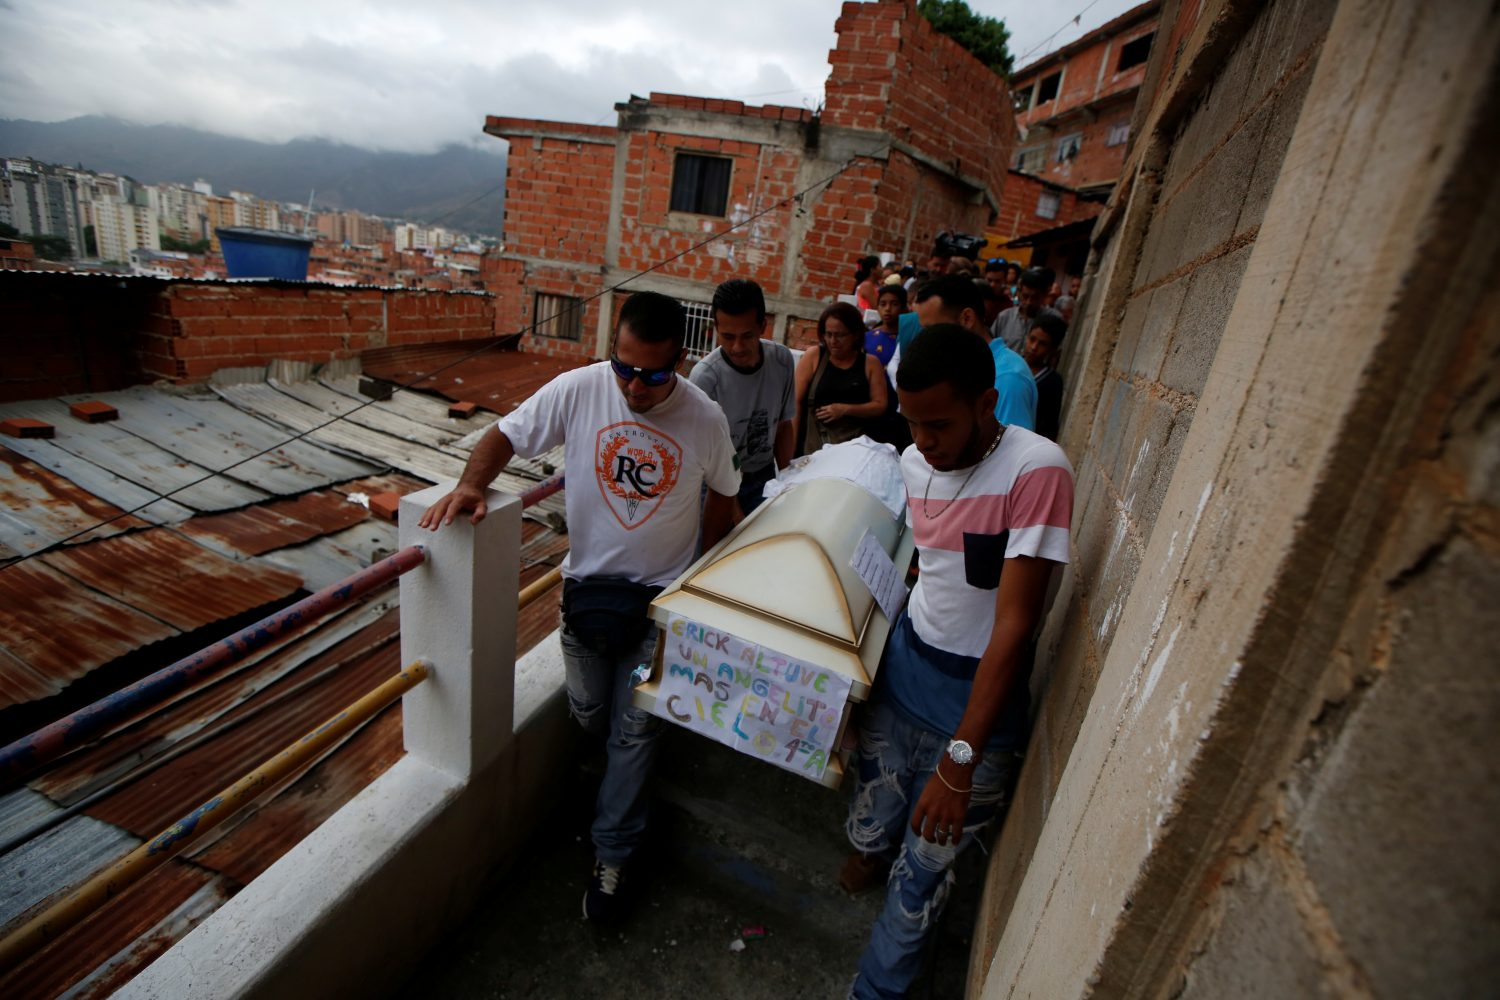 Relatives carry a coffin containing the body of Erick Altuve, a 11-year-old boy who died from respiratory problems while in care for stomach cancer at the public Jose Manuel de los Rios hospital, at Petare neighborhood in Caracas, Venezuela, May 30, 2019. REUTERS/Ivan Alvarado